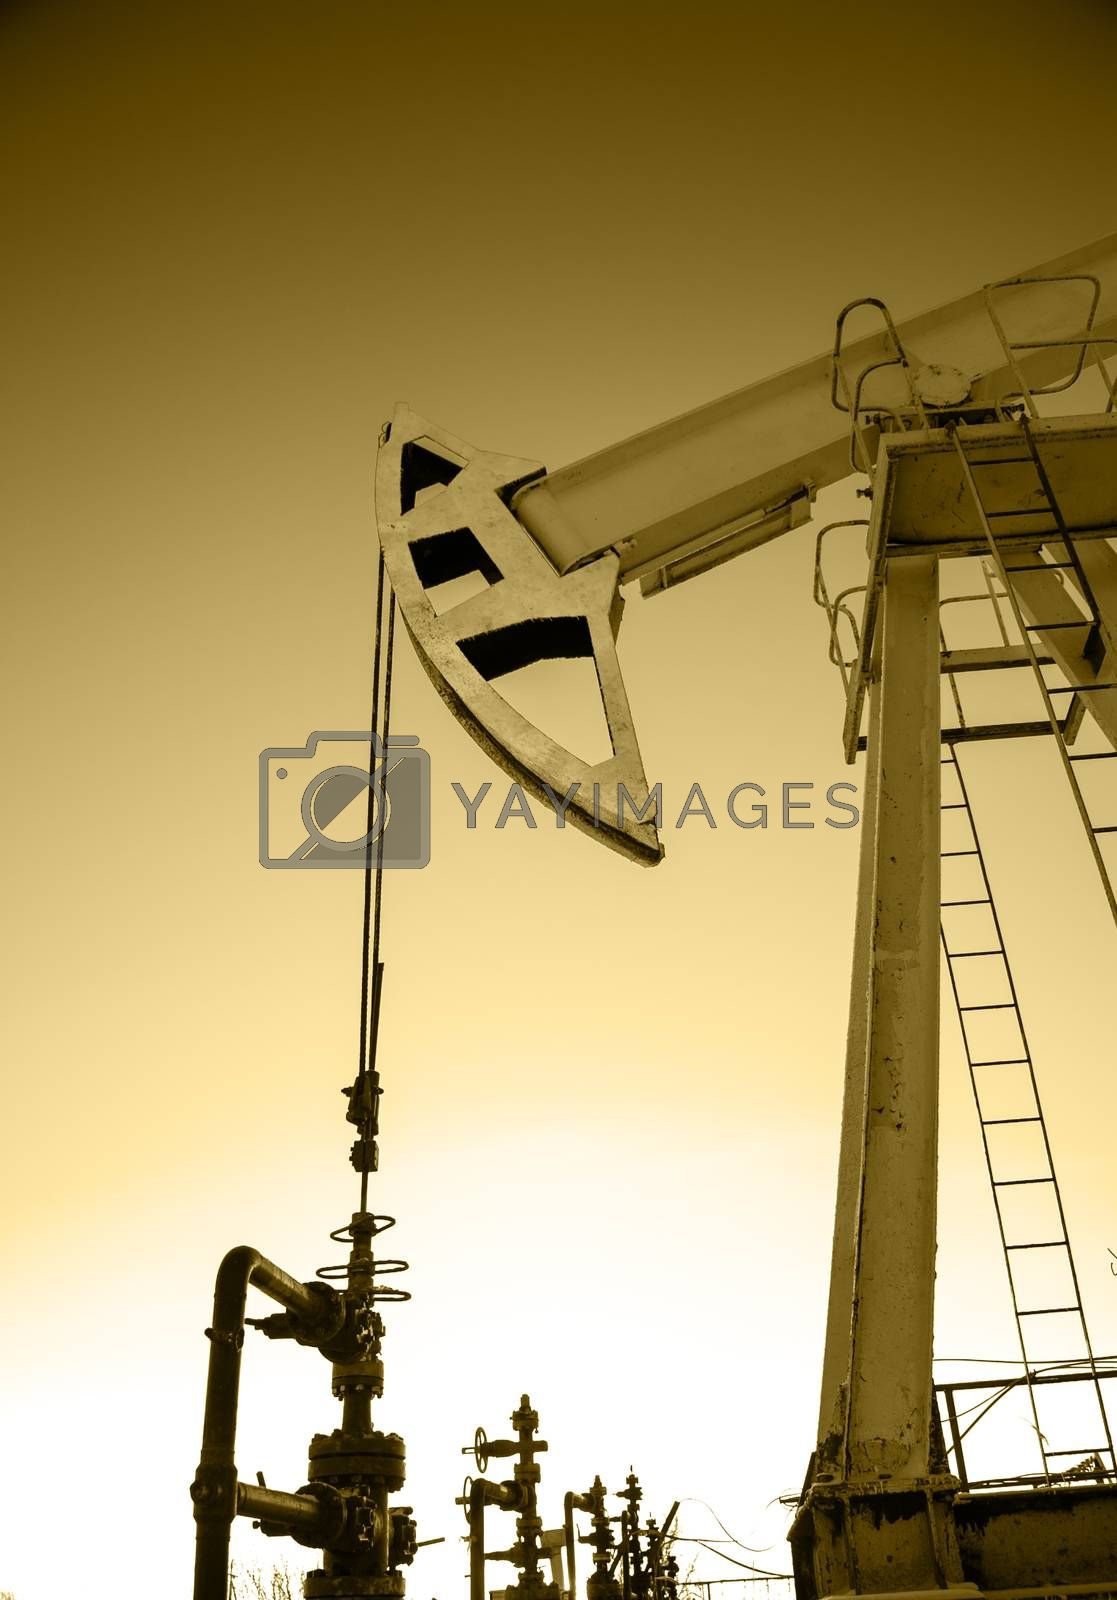 Pump jack and wellheads. Extraction of oil. Toned sepia.